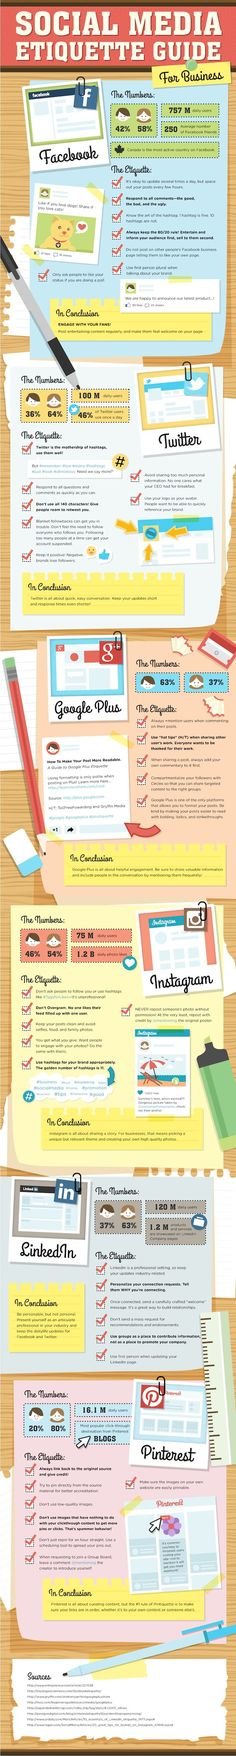 A Social Media Etiquette Guide You Might Find Useful